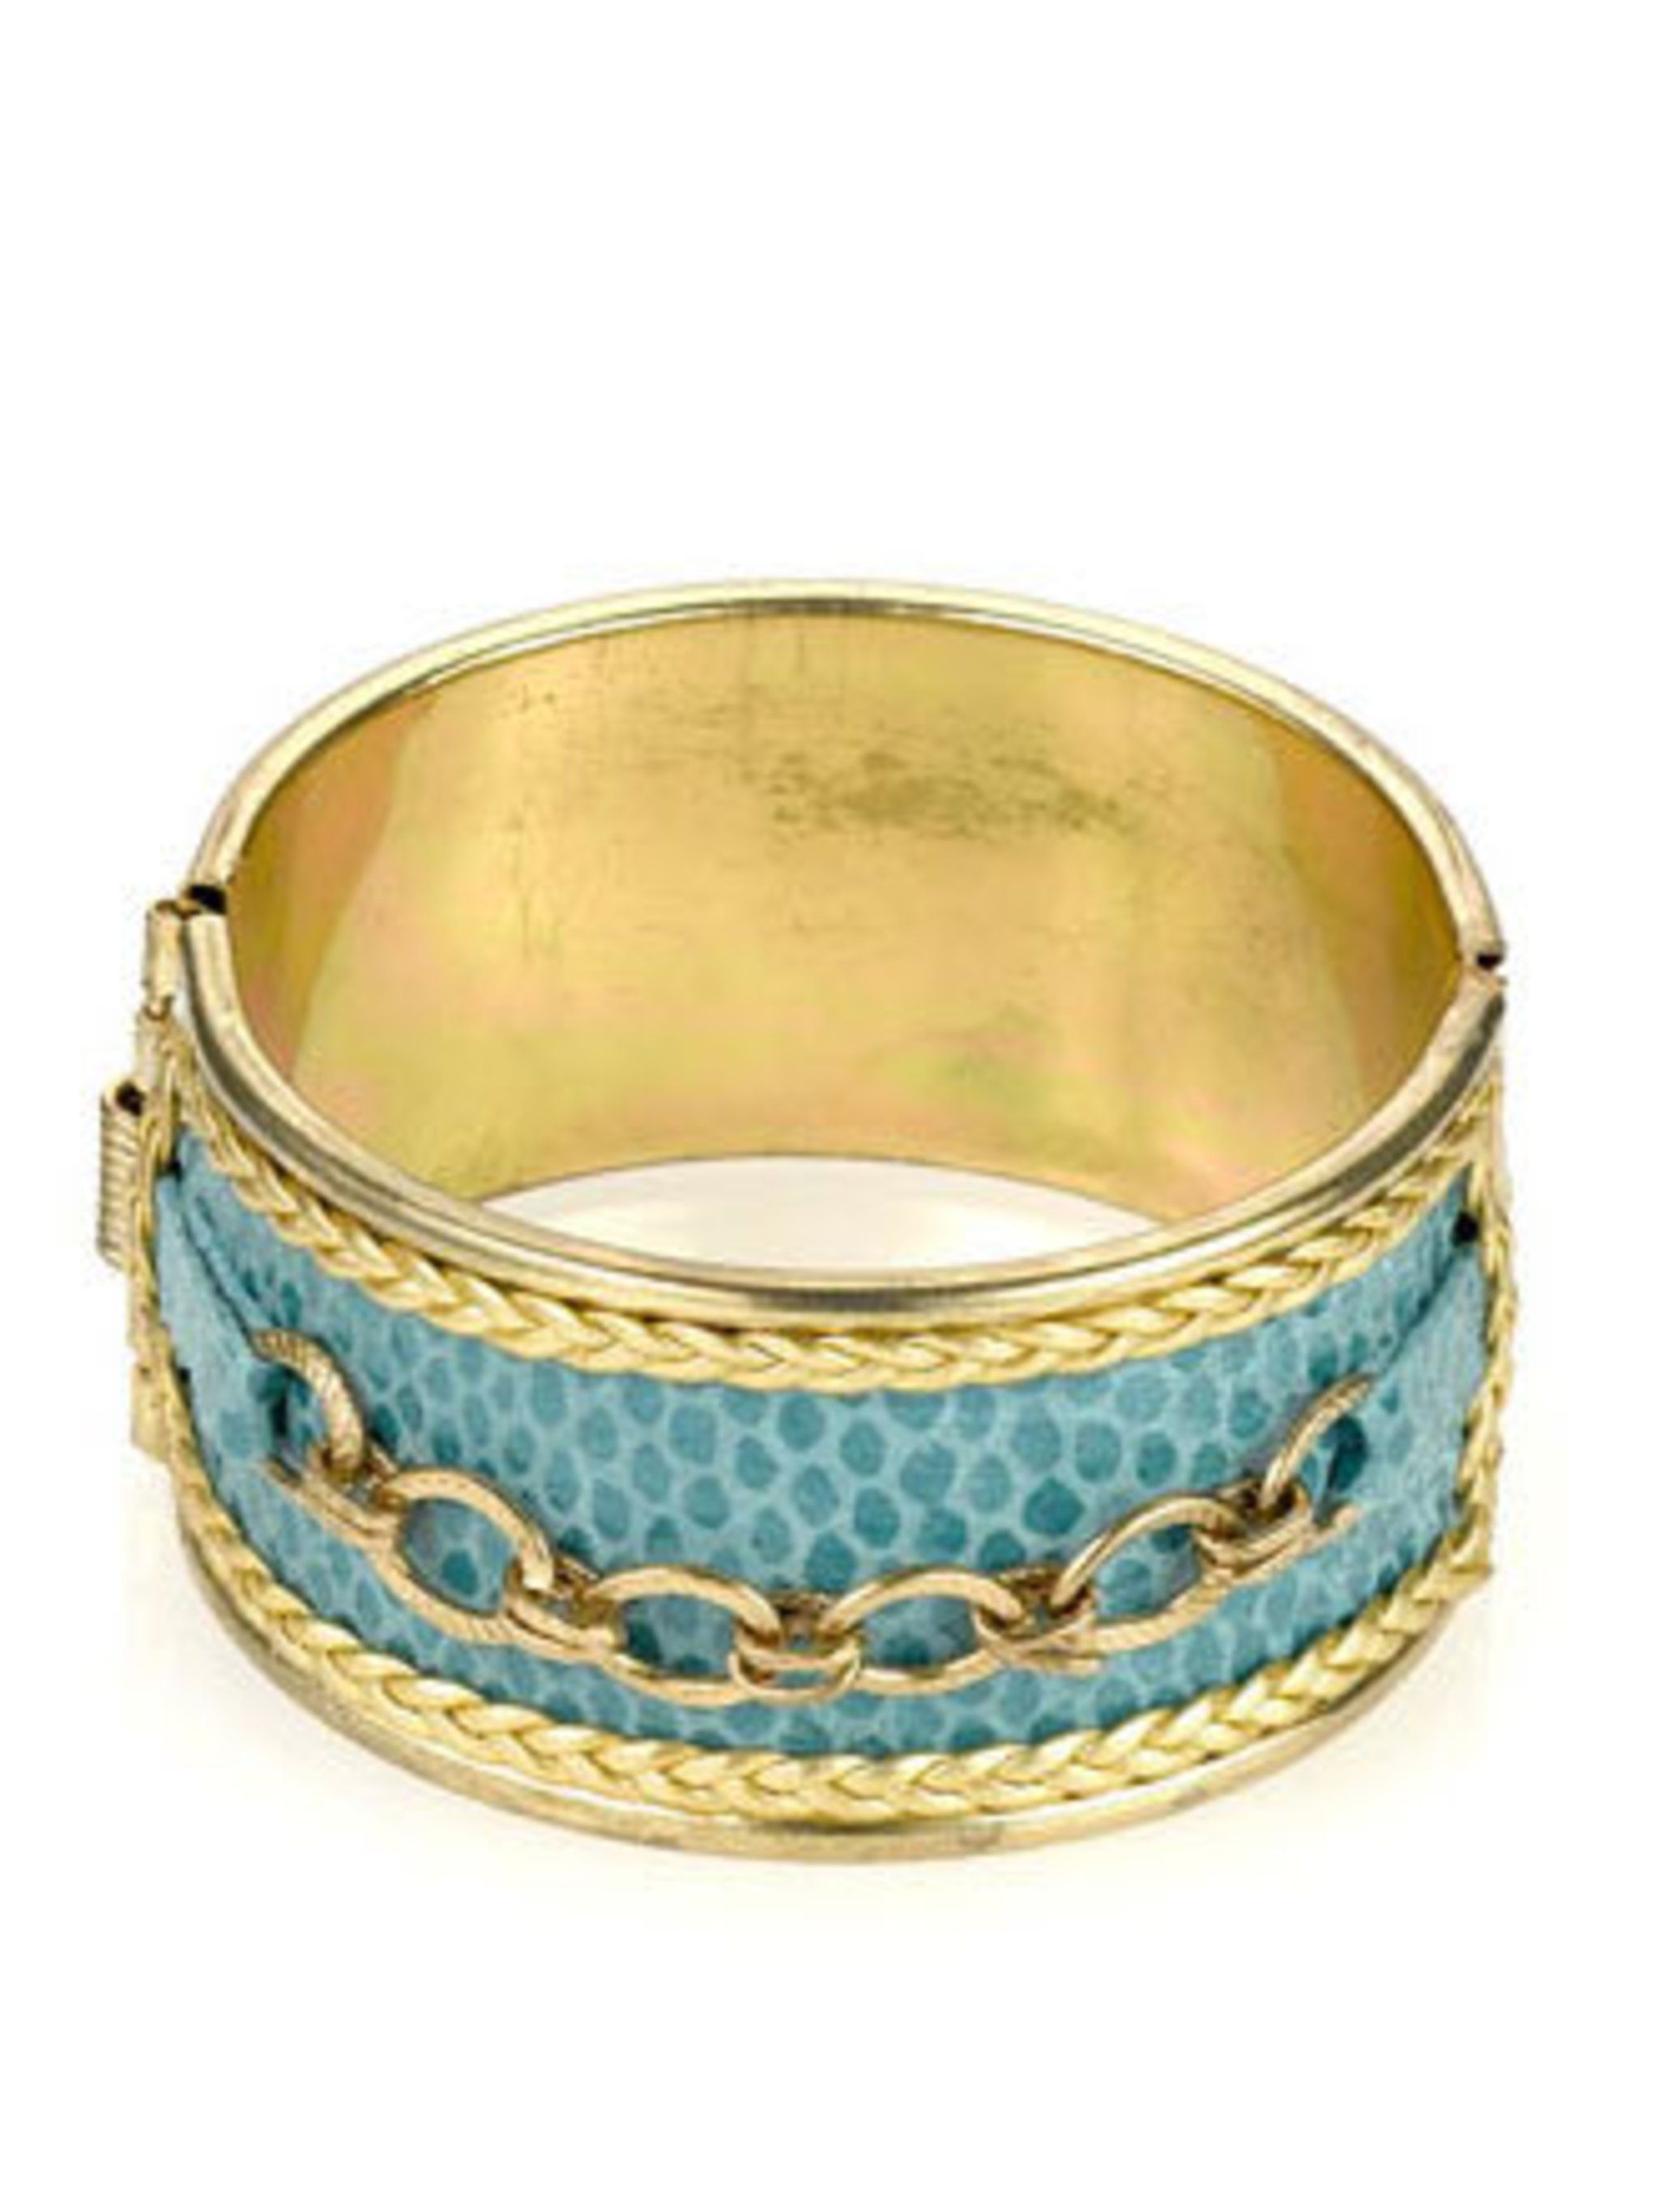 "<p>You can never have too much jewellery (well, it doesn't take up that much space), so slip your wrist into this turquoise and gold number. It's a great statement piece, without the hefty price tag.</p><p>Cuff, £10 by <a href=""http://www.monsoon.co.uk/in"